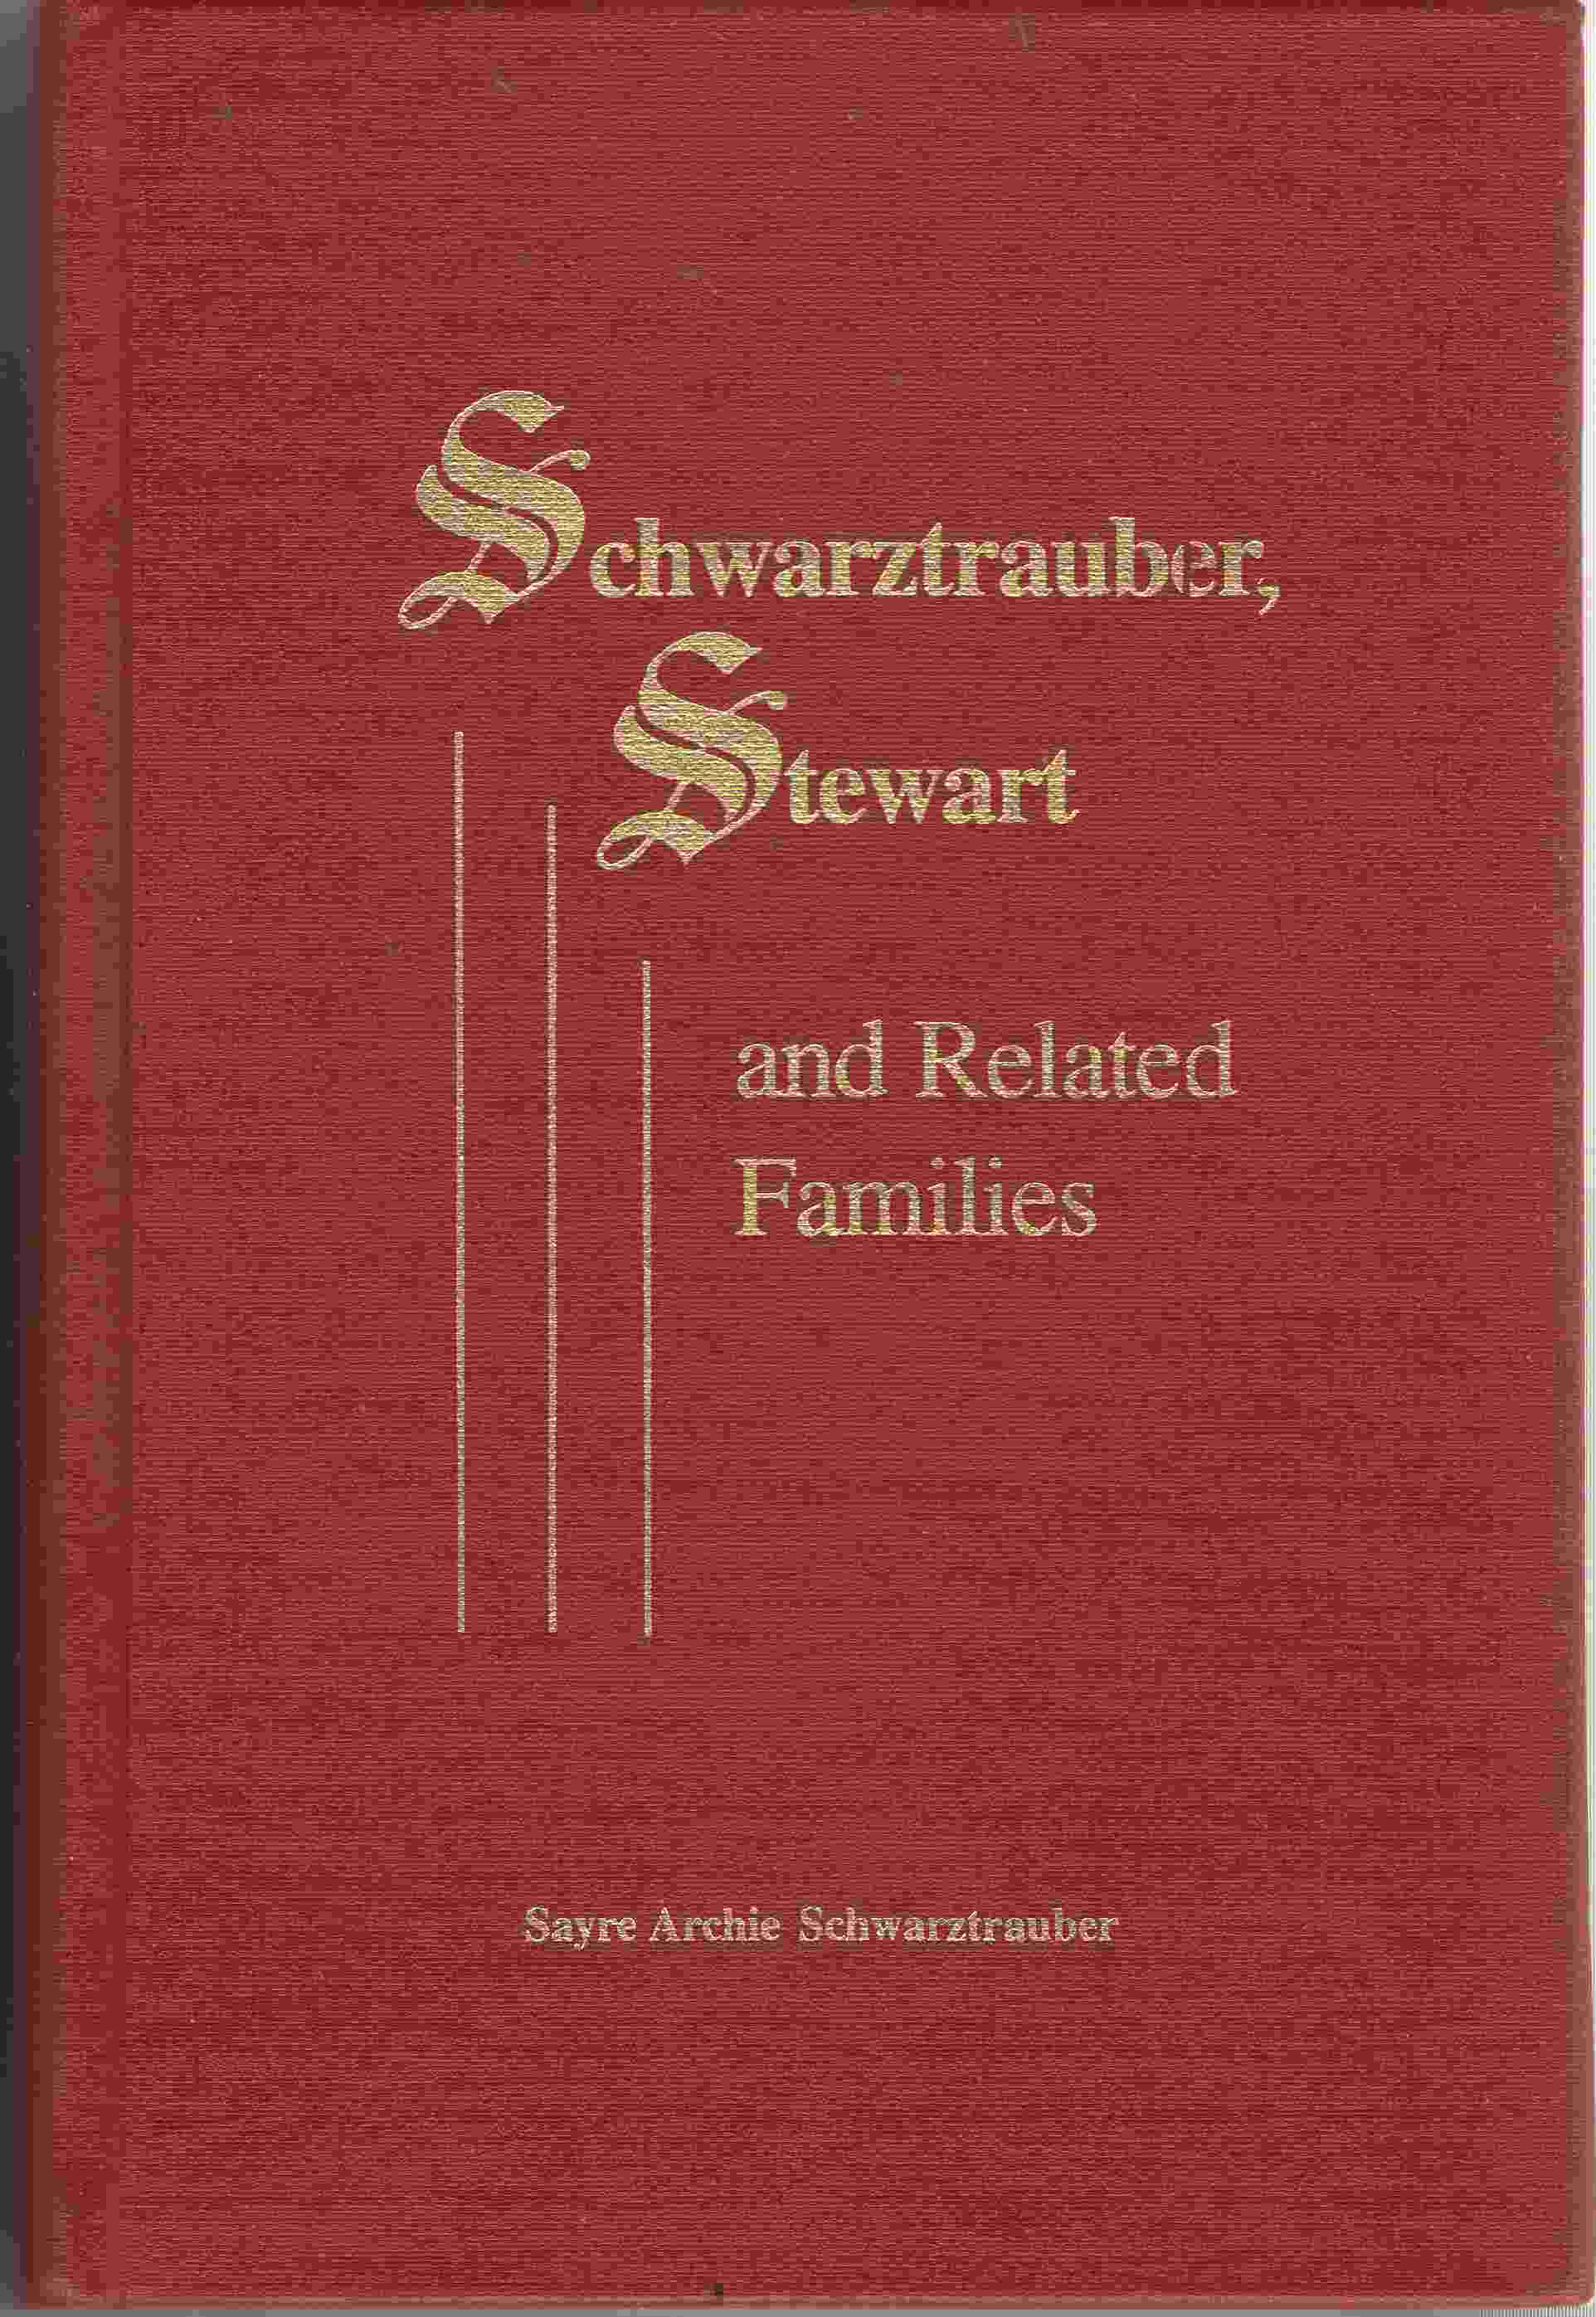 Image for Schwarztrauber, Stewart, and Related Families